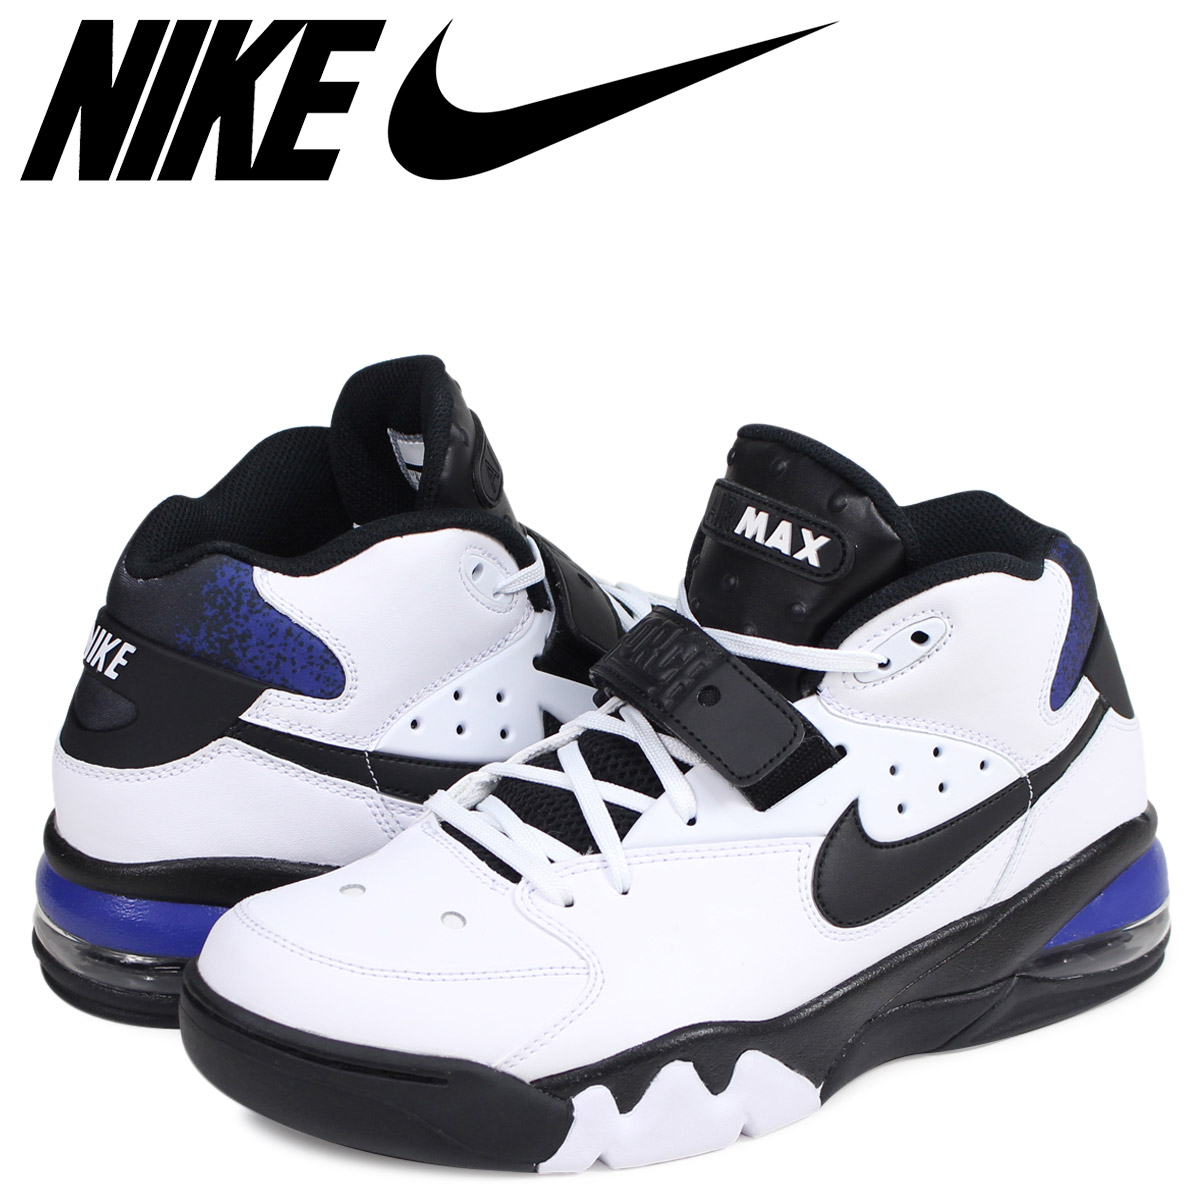 NIKE Shoes | Air Force Max 93 Barkley Sz 8 | Poshmark